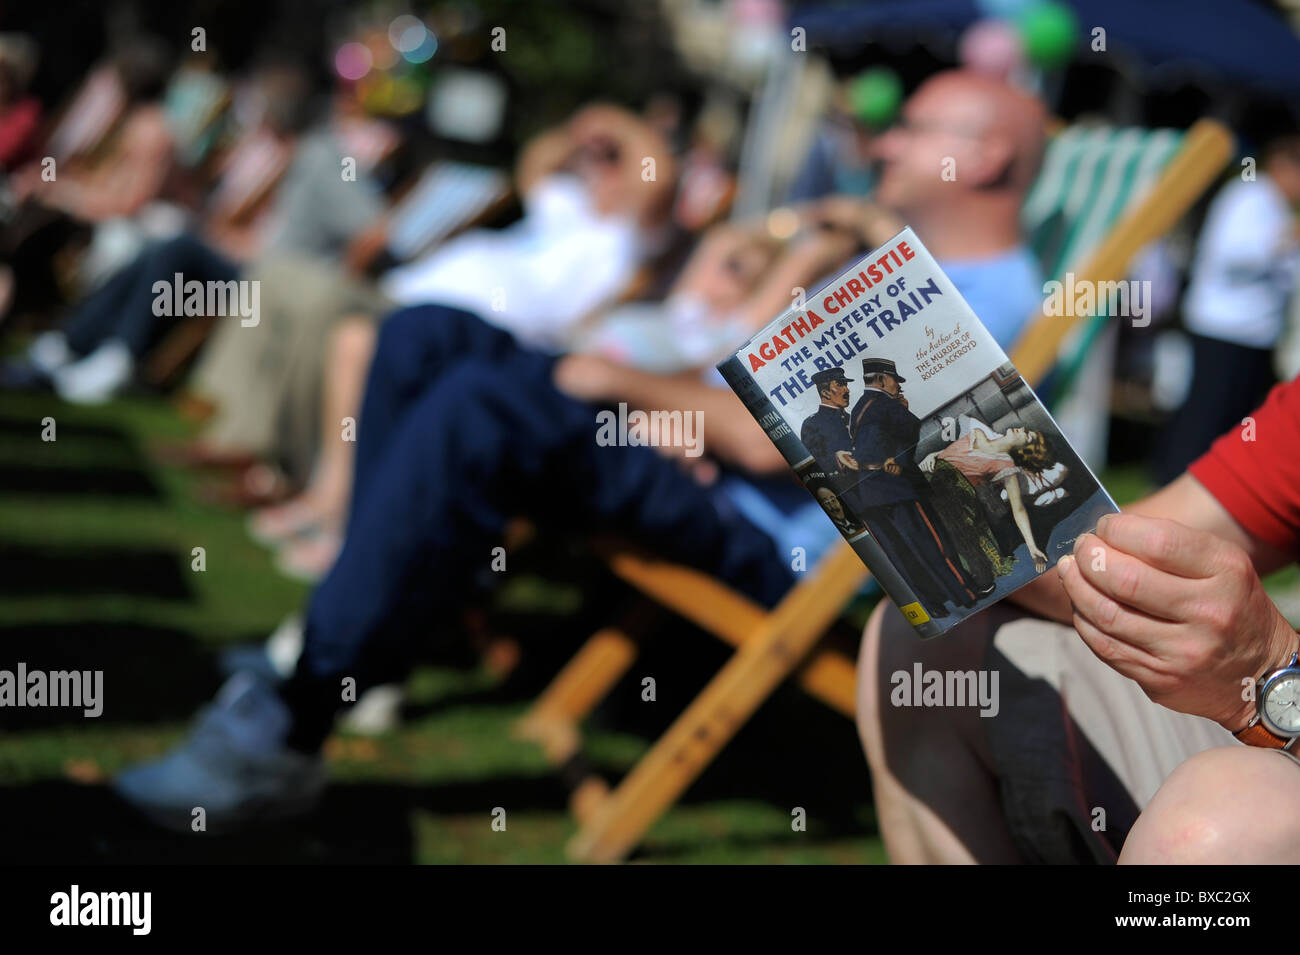 Picture By Jim Wileman 12/09/2010 The Agatha Christie Festival, in Torquay, Devon. - Stock Image